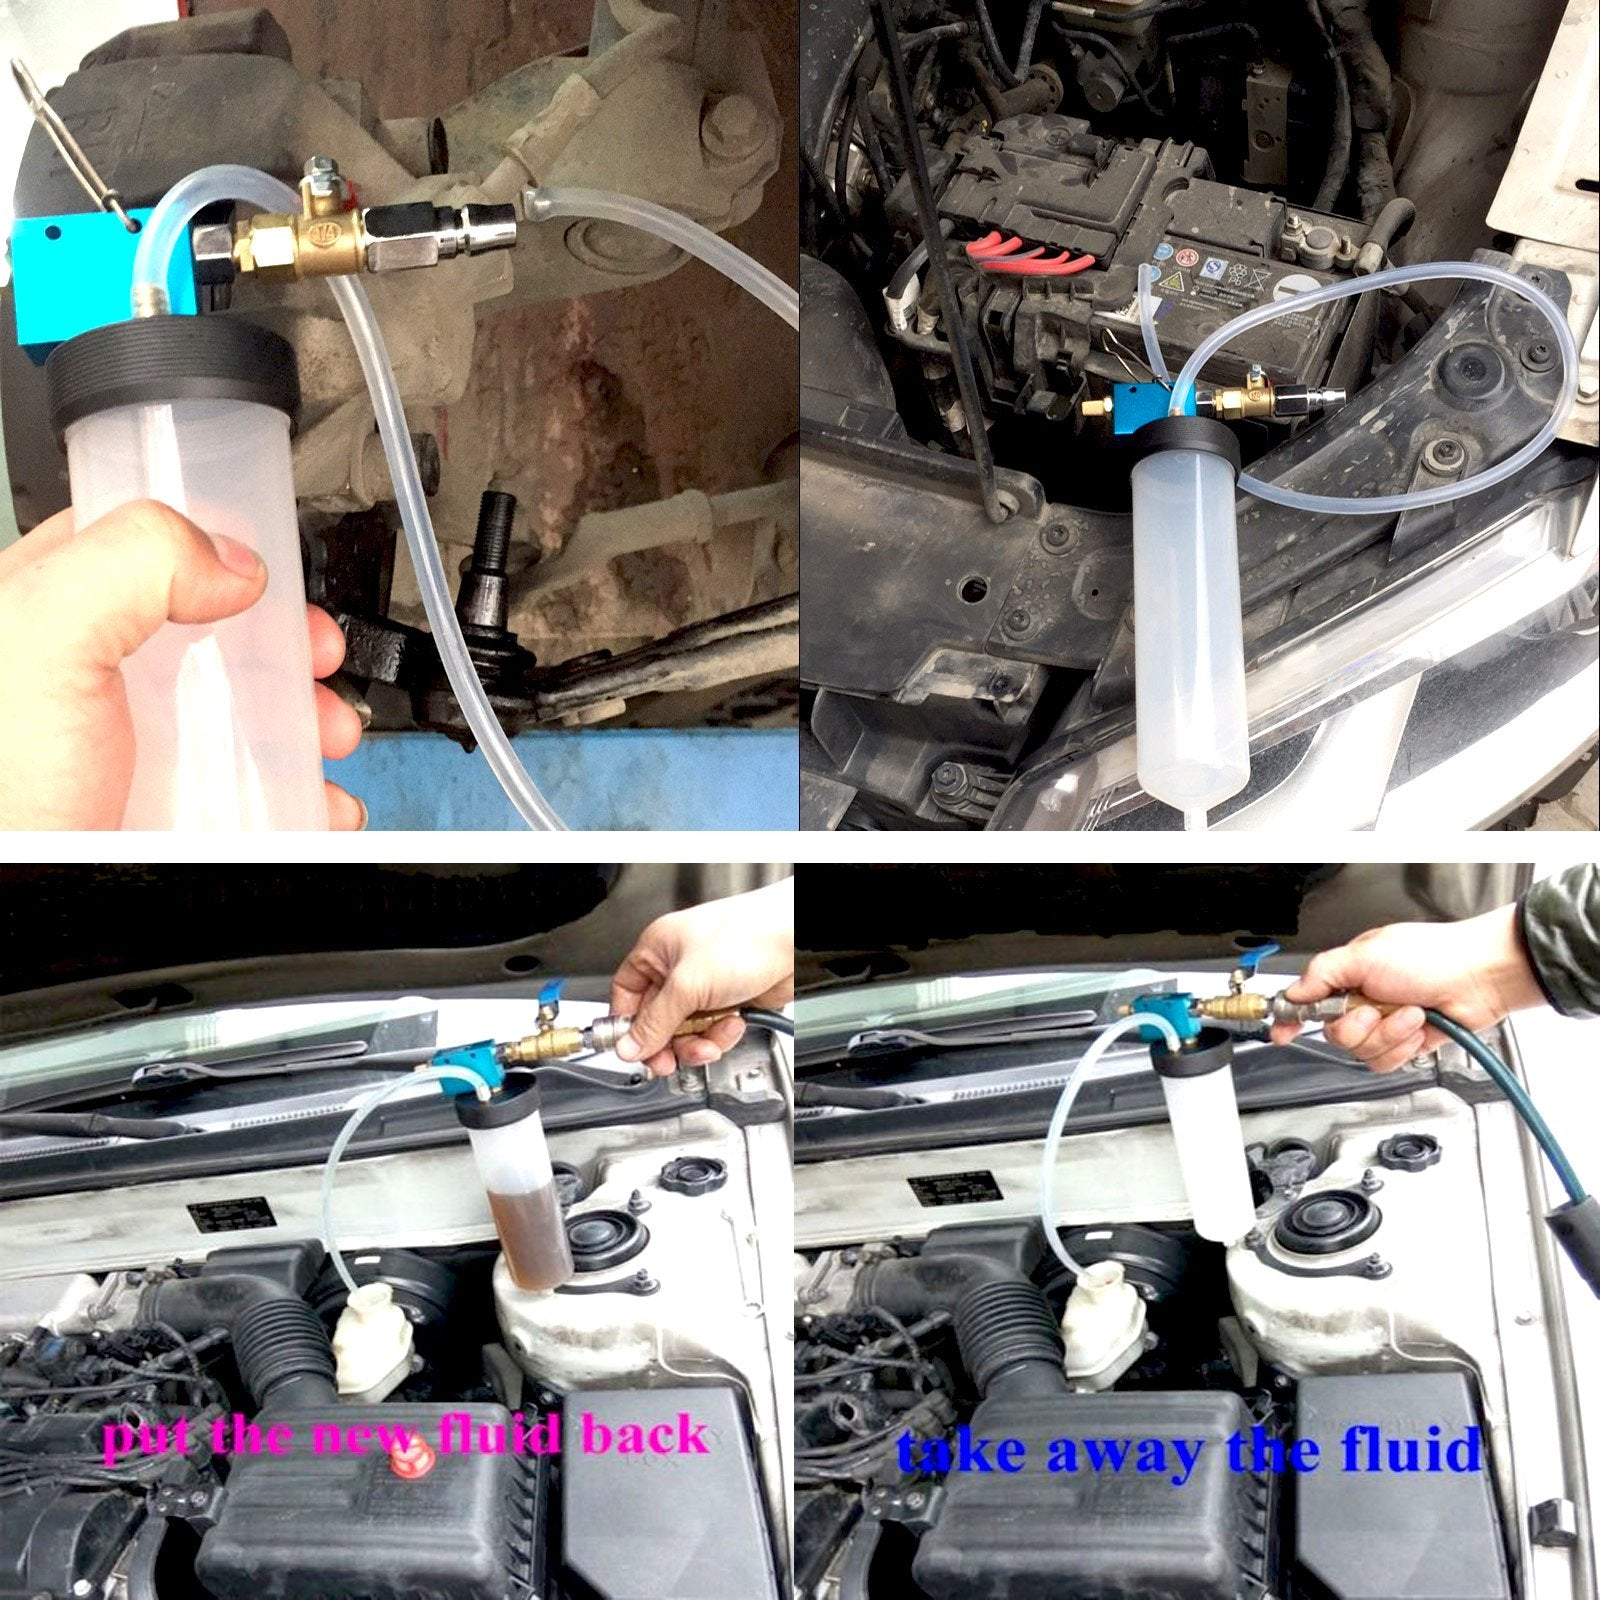 Auto Car Brake Fluid Replacement Tool/Brake Fluid Drained Bleeder tool Equipment Kit